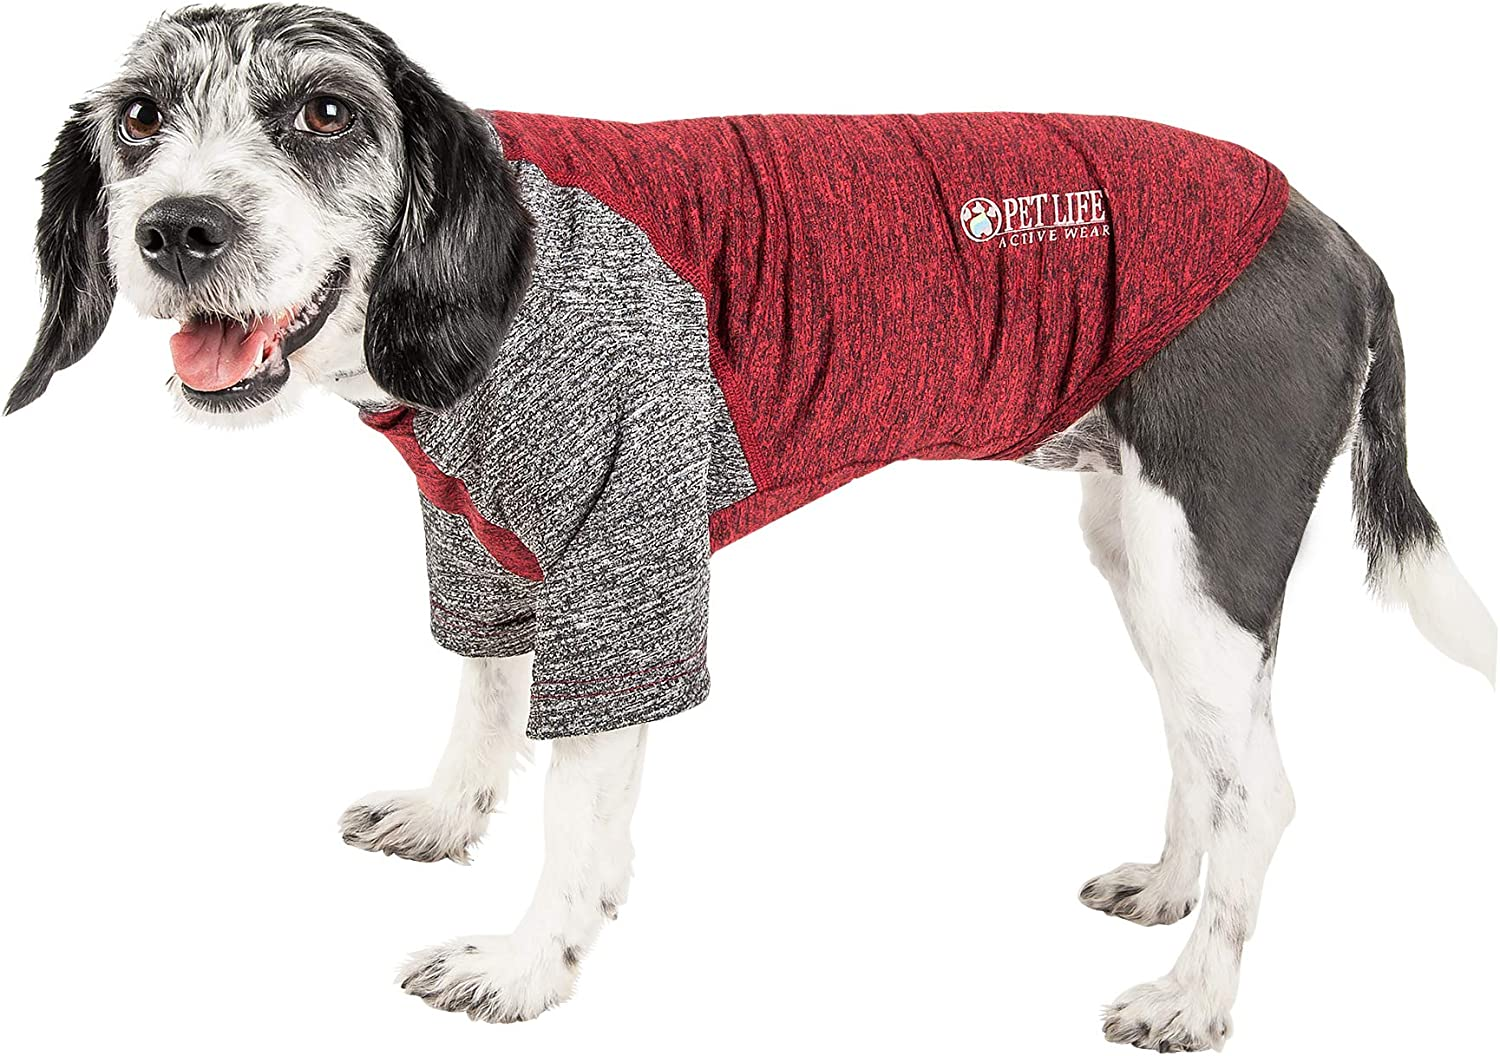 Pet Life 'Hybreed' 4Way Stretch TwoToned Performance Dog TShirt, XSmall, Maroon